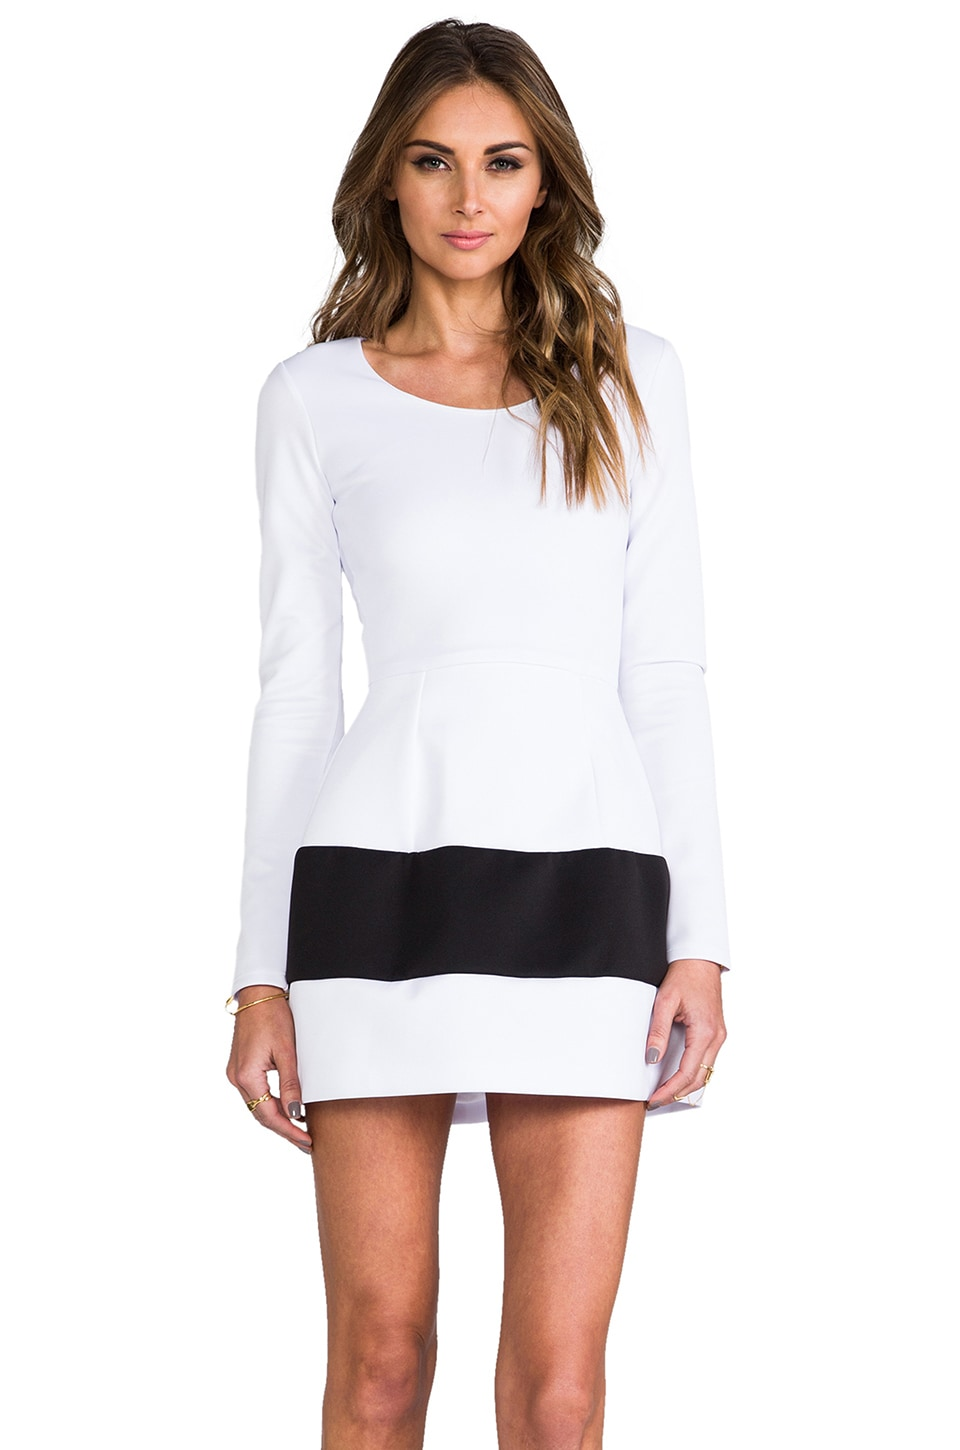 Boulee Marilyn Dress in White & Black